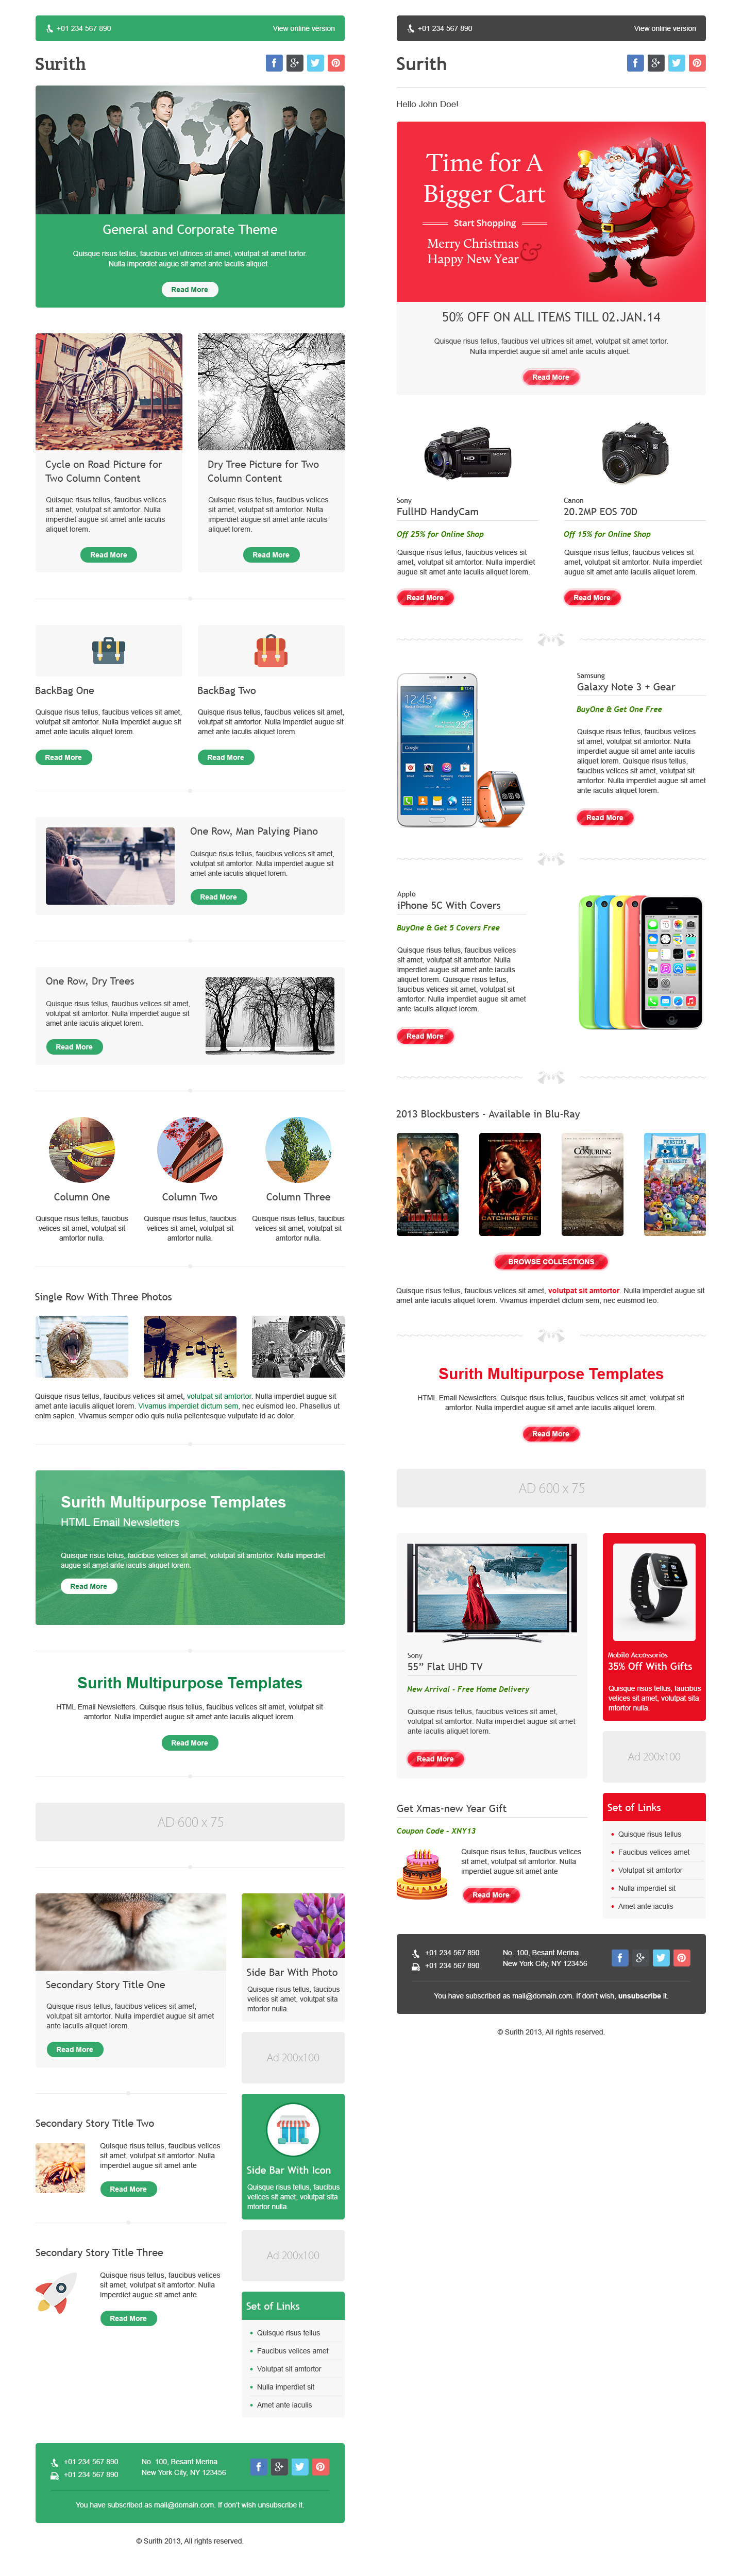 Surith Email Newsletter Templates Newsletter Templates - Mailchimp holiday templates